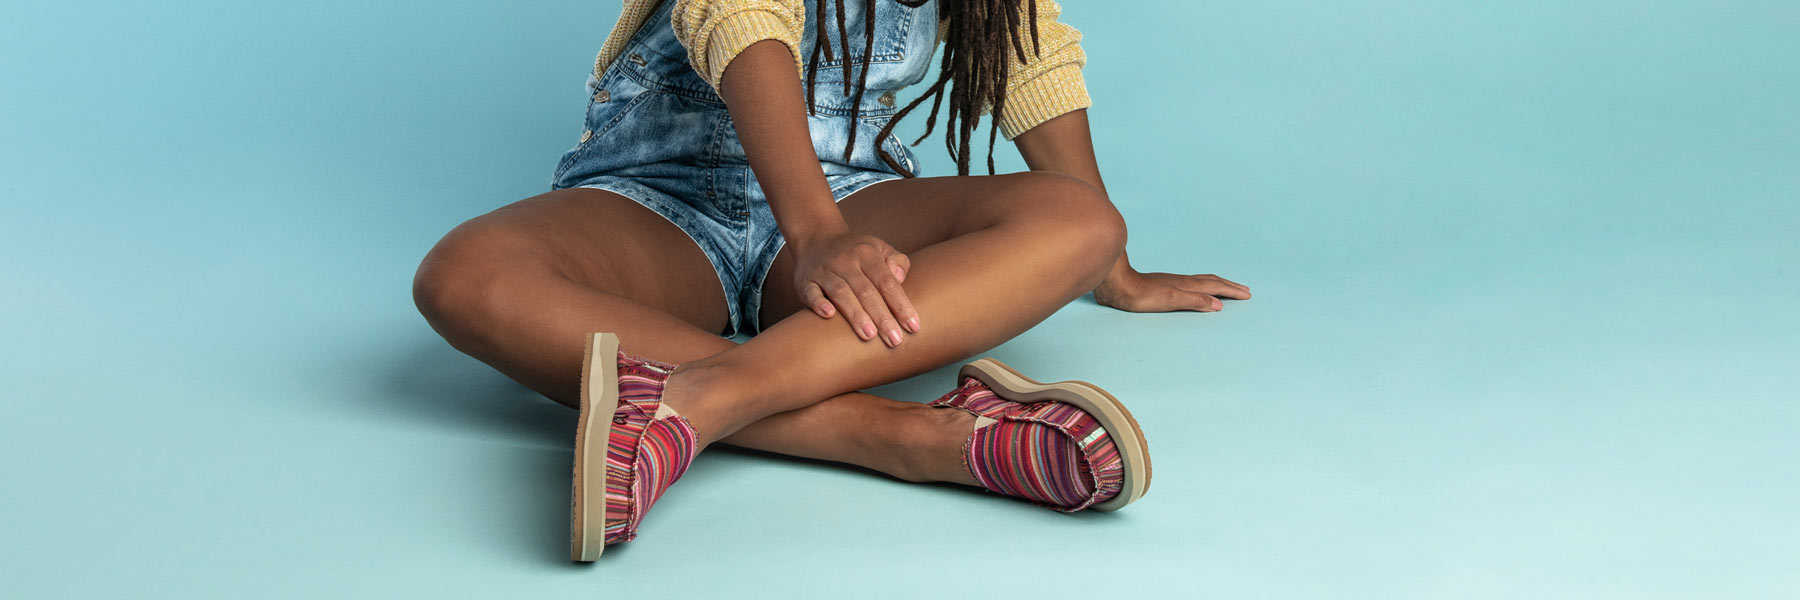 Close up of a person's legs wearing Sanuk Shoes.